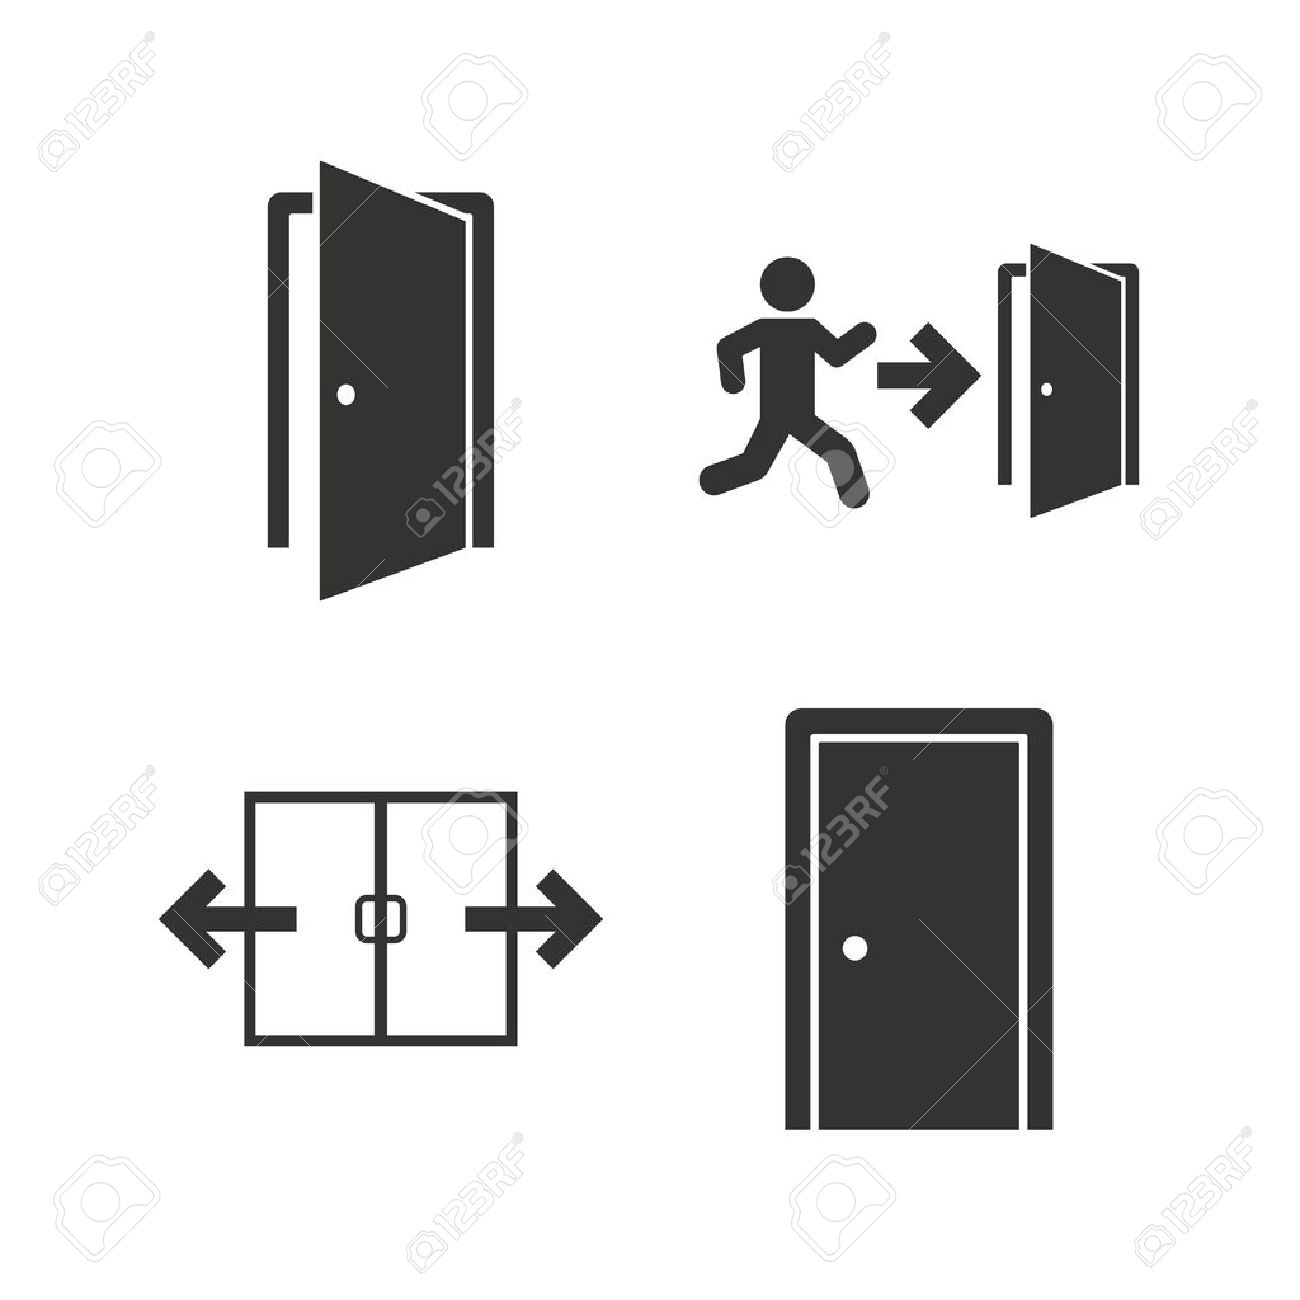 23960 Escape Cliparts Stock Vector And Royalty Free Escape